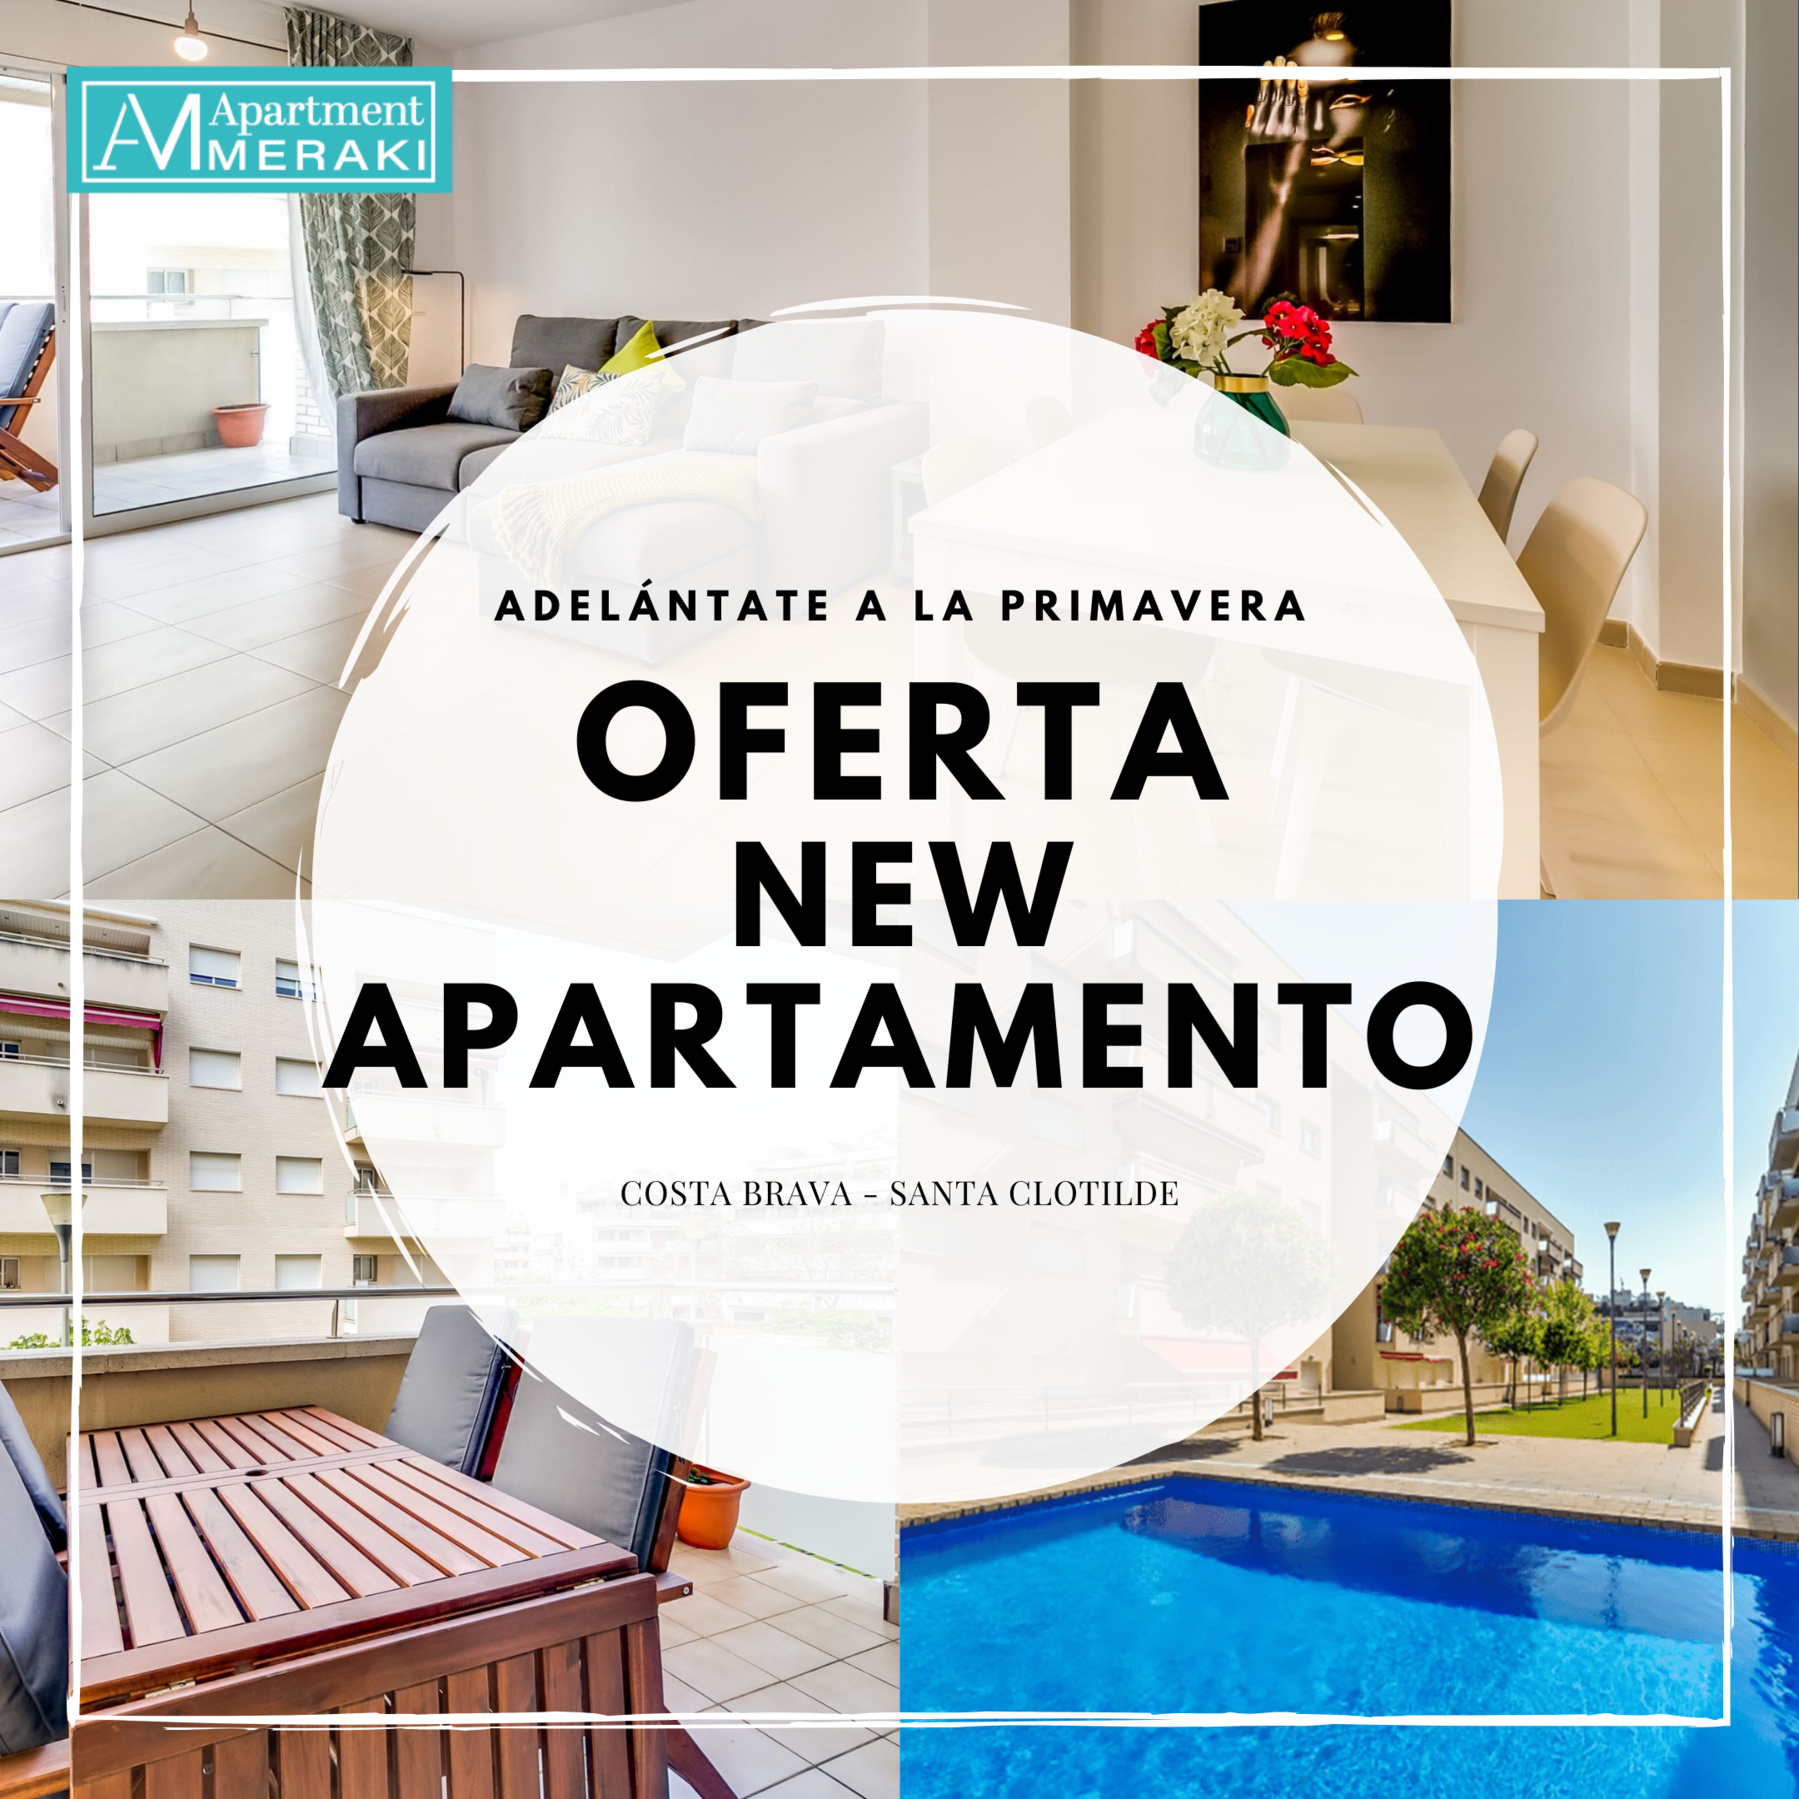 Apartment Meraki-Promo exclusiva vacacional Costa Brava Playa